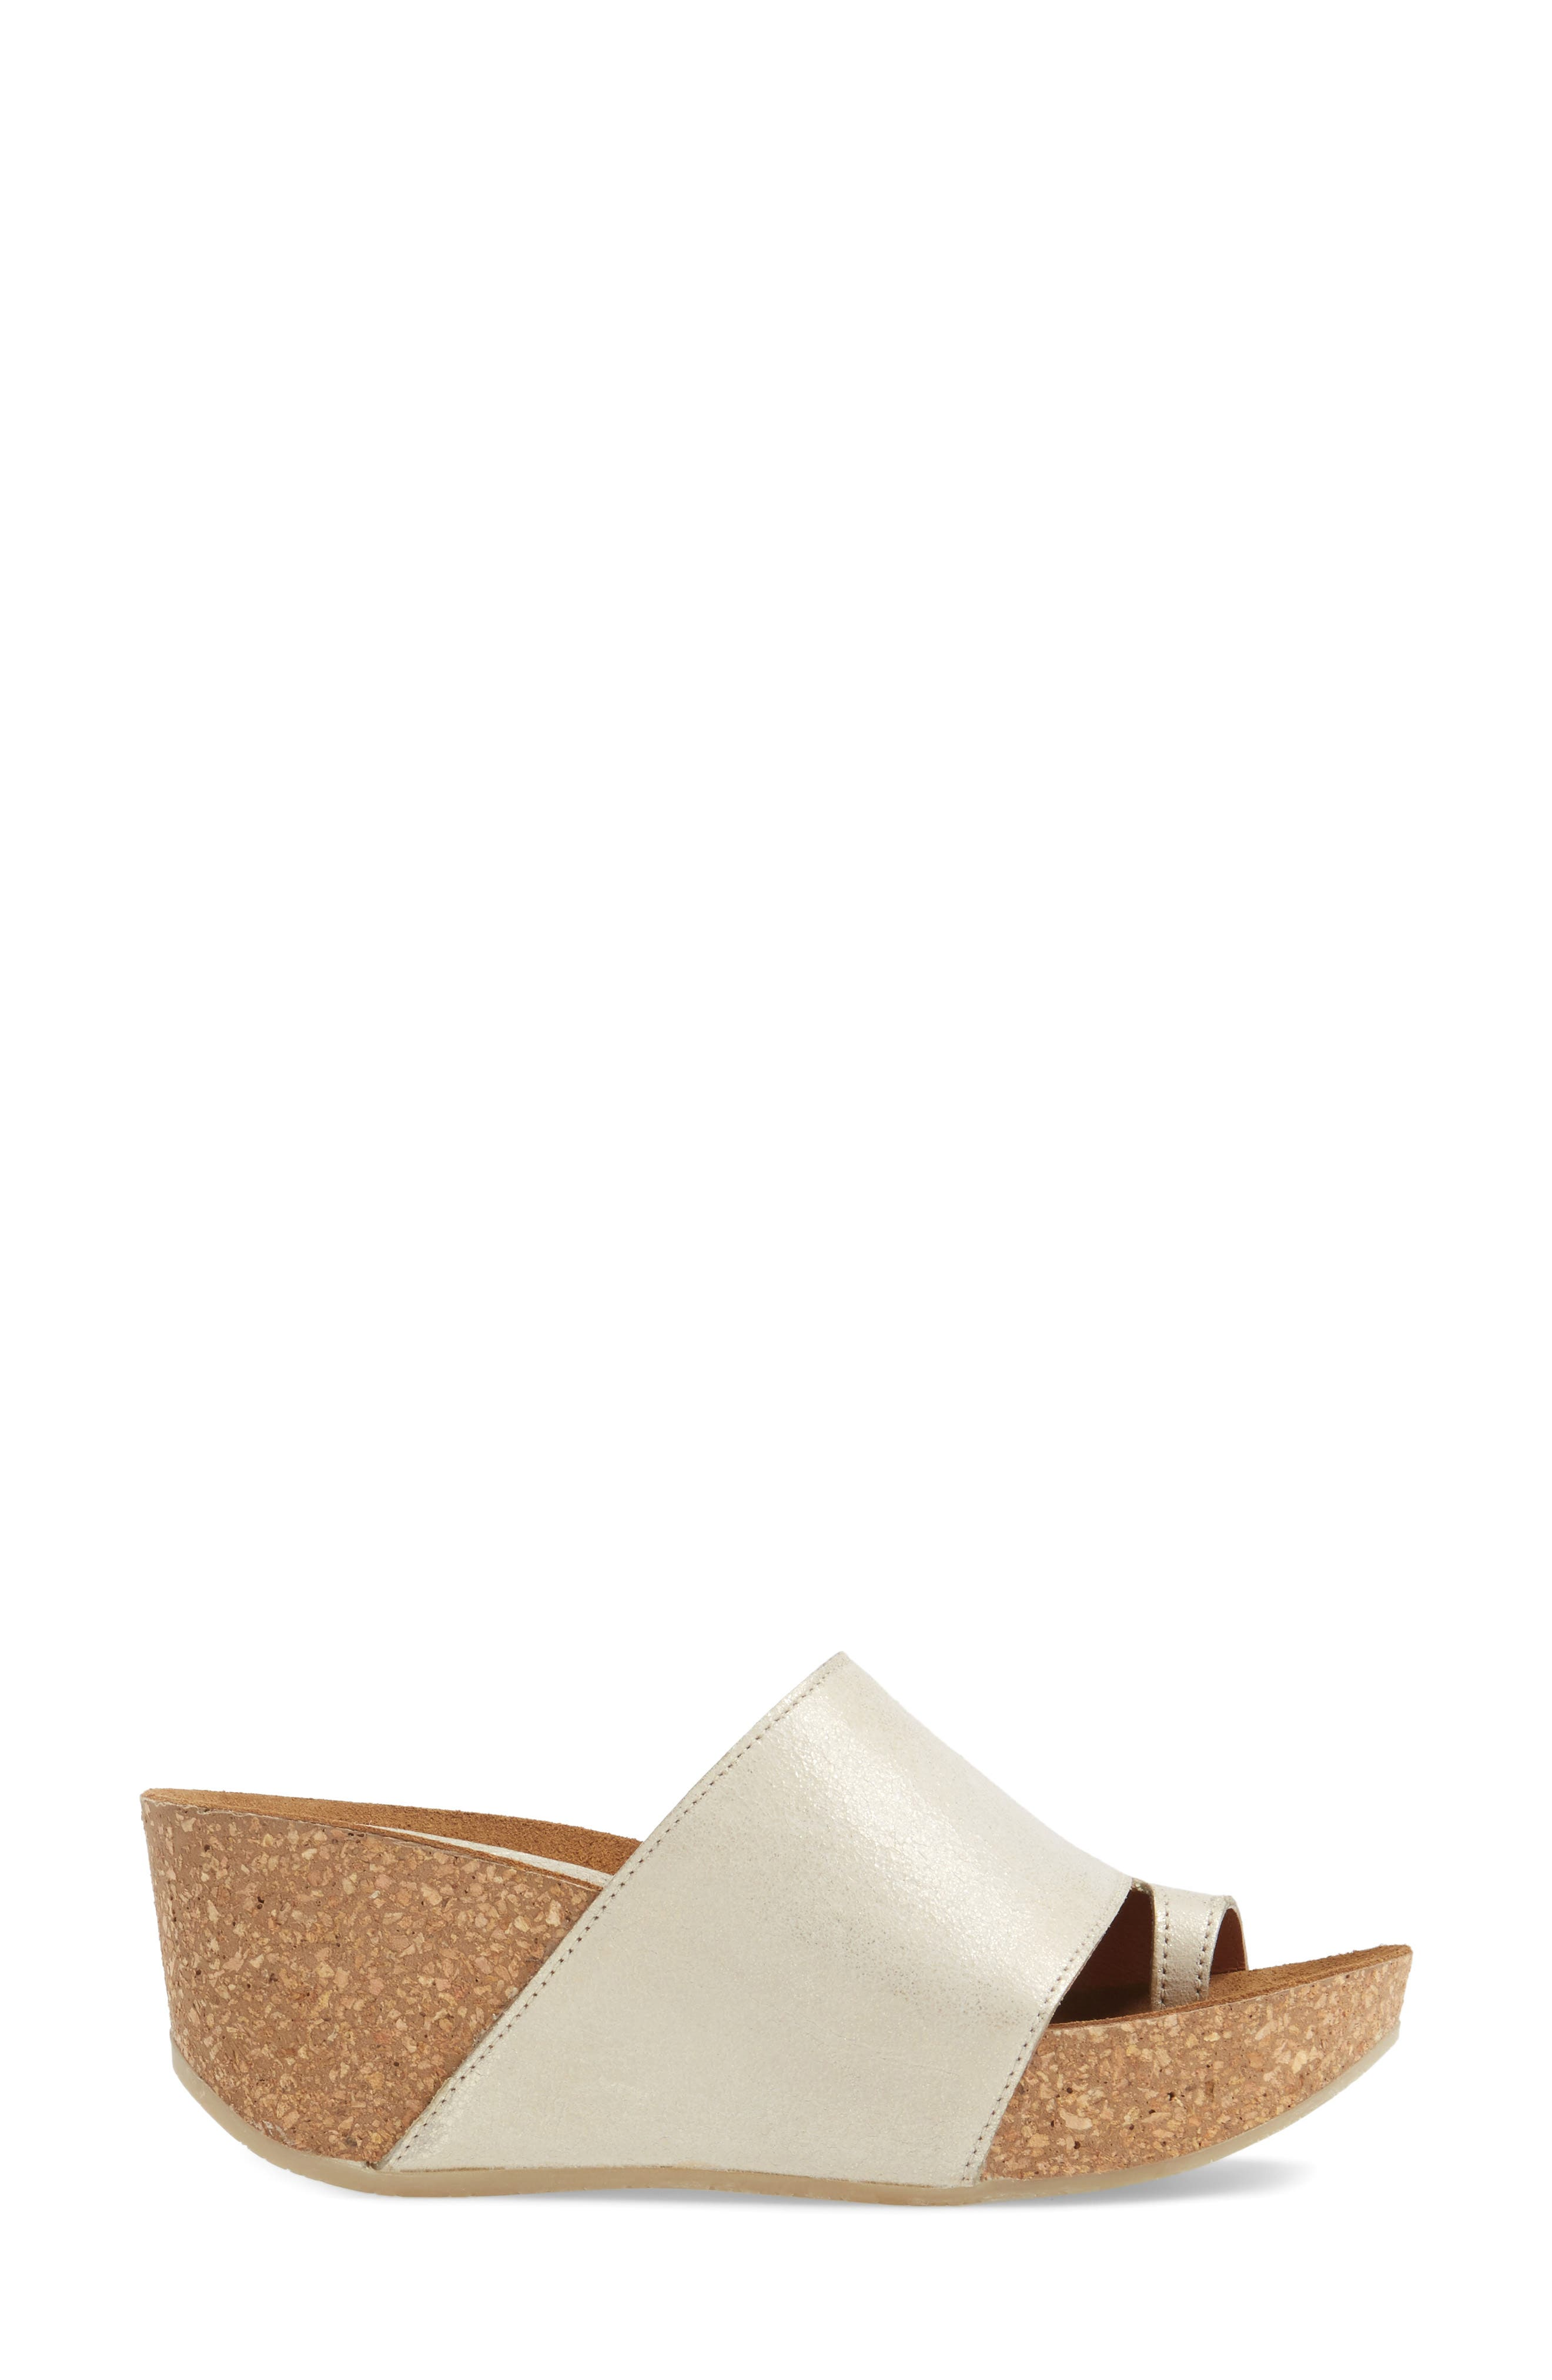 Donald J Pliner Ginie Platform Wedge Sandal,                             Alternate thumbnail 22, color,